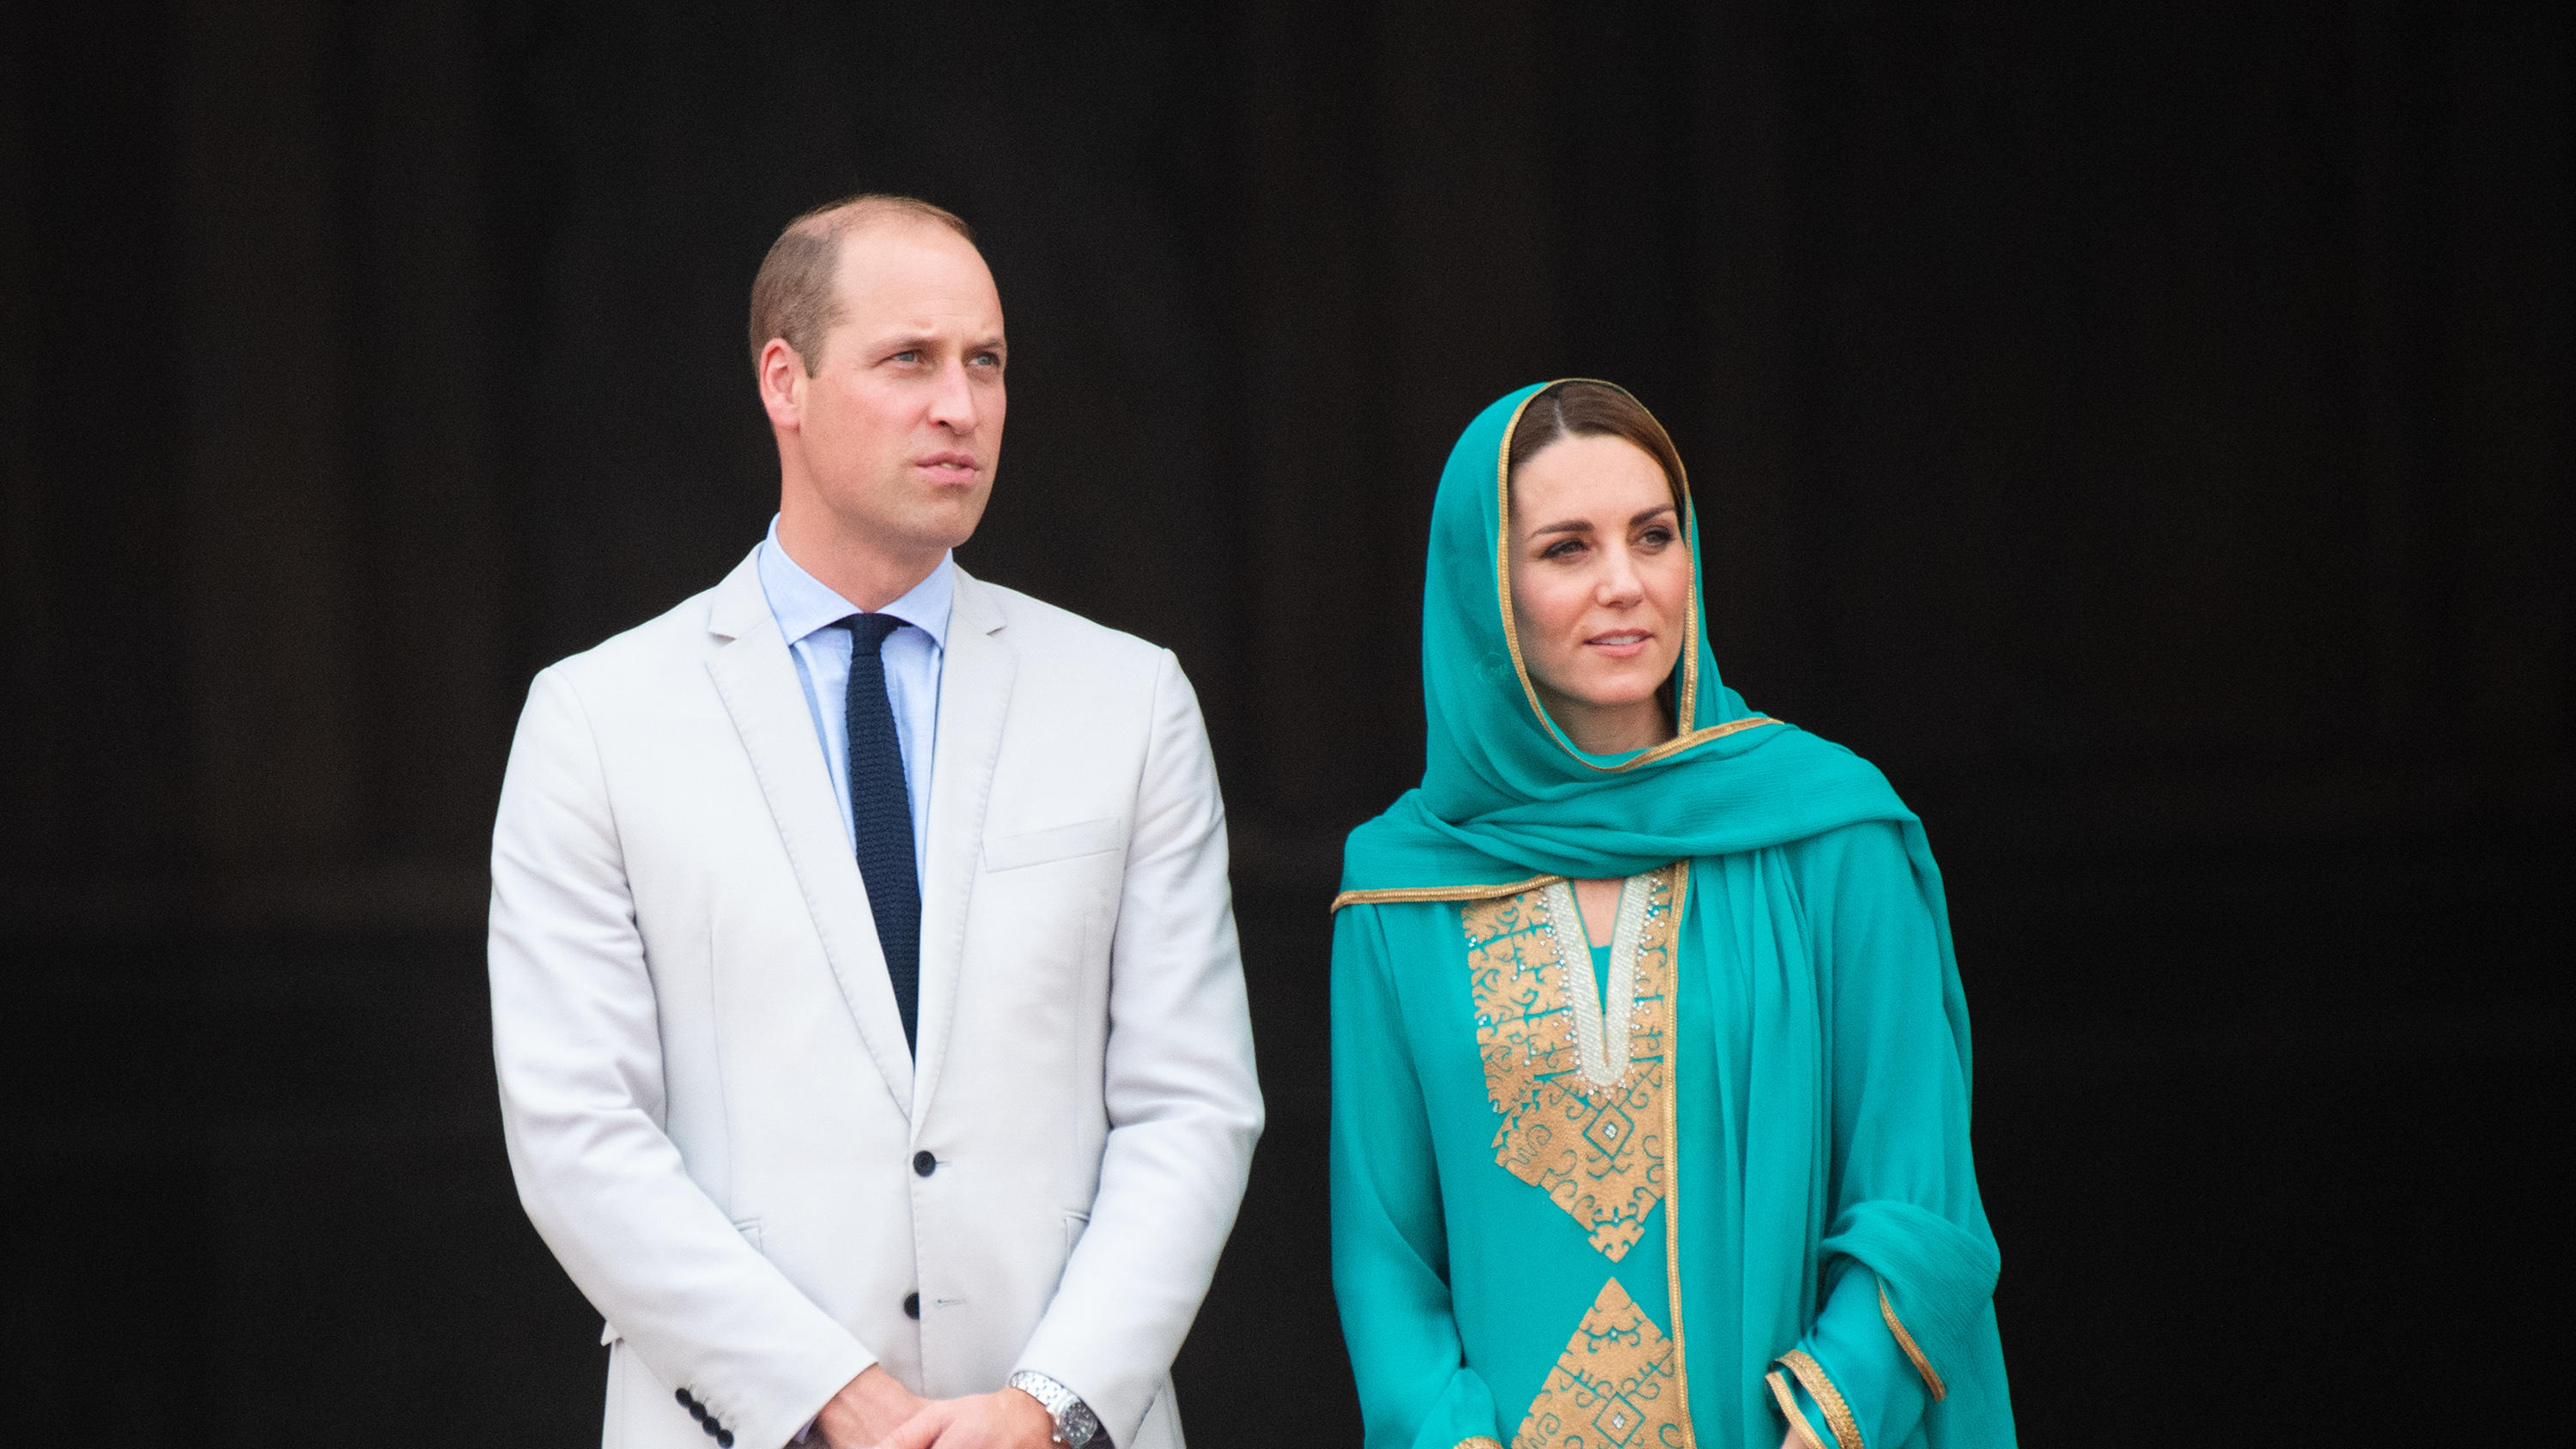 Prince William, the Duke of Cambridge and Catherine, the Duchess of Cambridge visit the Badshahi Mosque in Lahore.Pictured: Prince William,the Duke of Cambridge and Catherine,the Duchess of CambridgeRef: SPL5122837 171019 NON-EXCLUSIVEPicture by: Spl